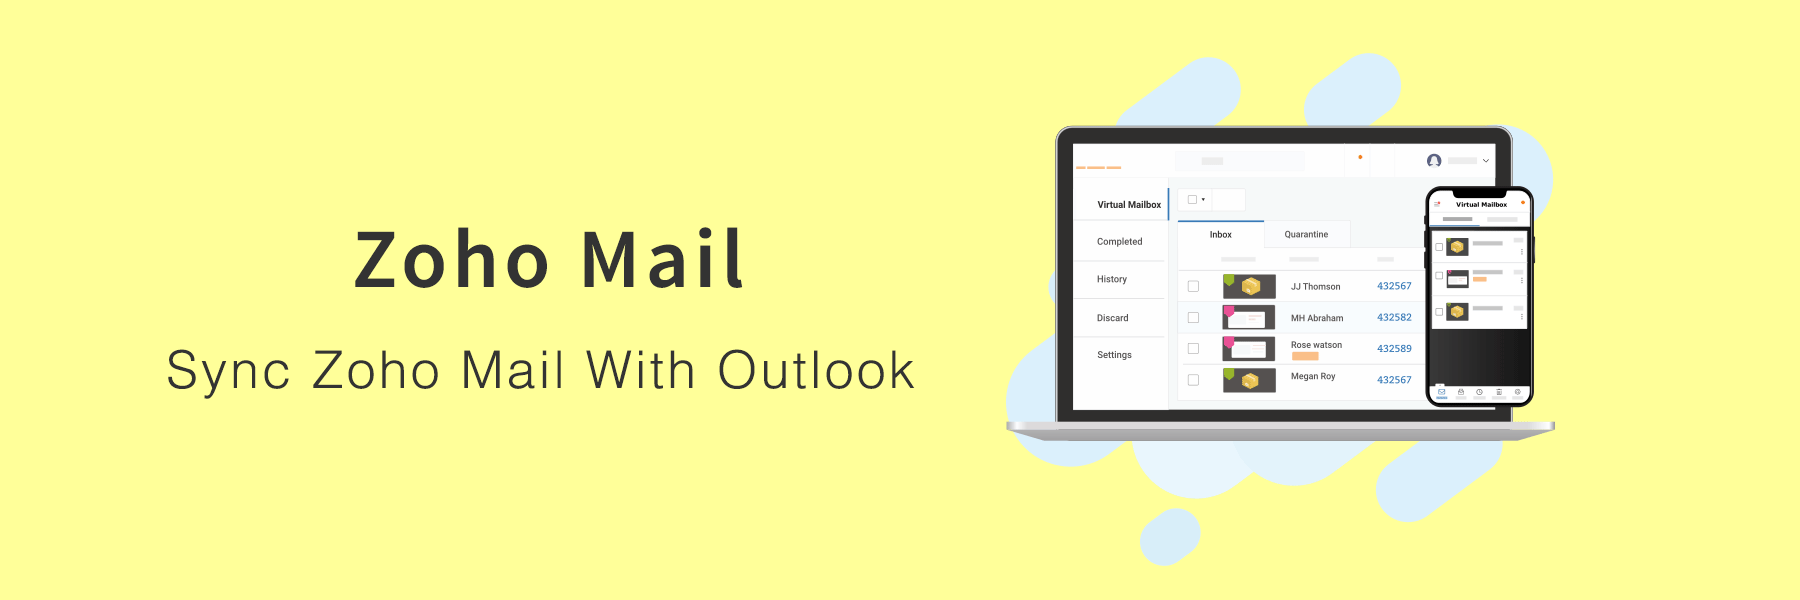 How To Sync Zoho Mail With Outlook